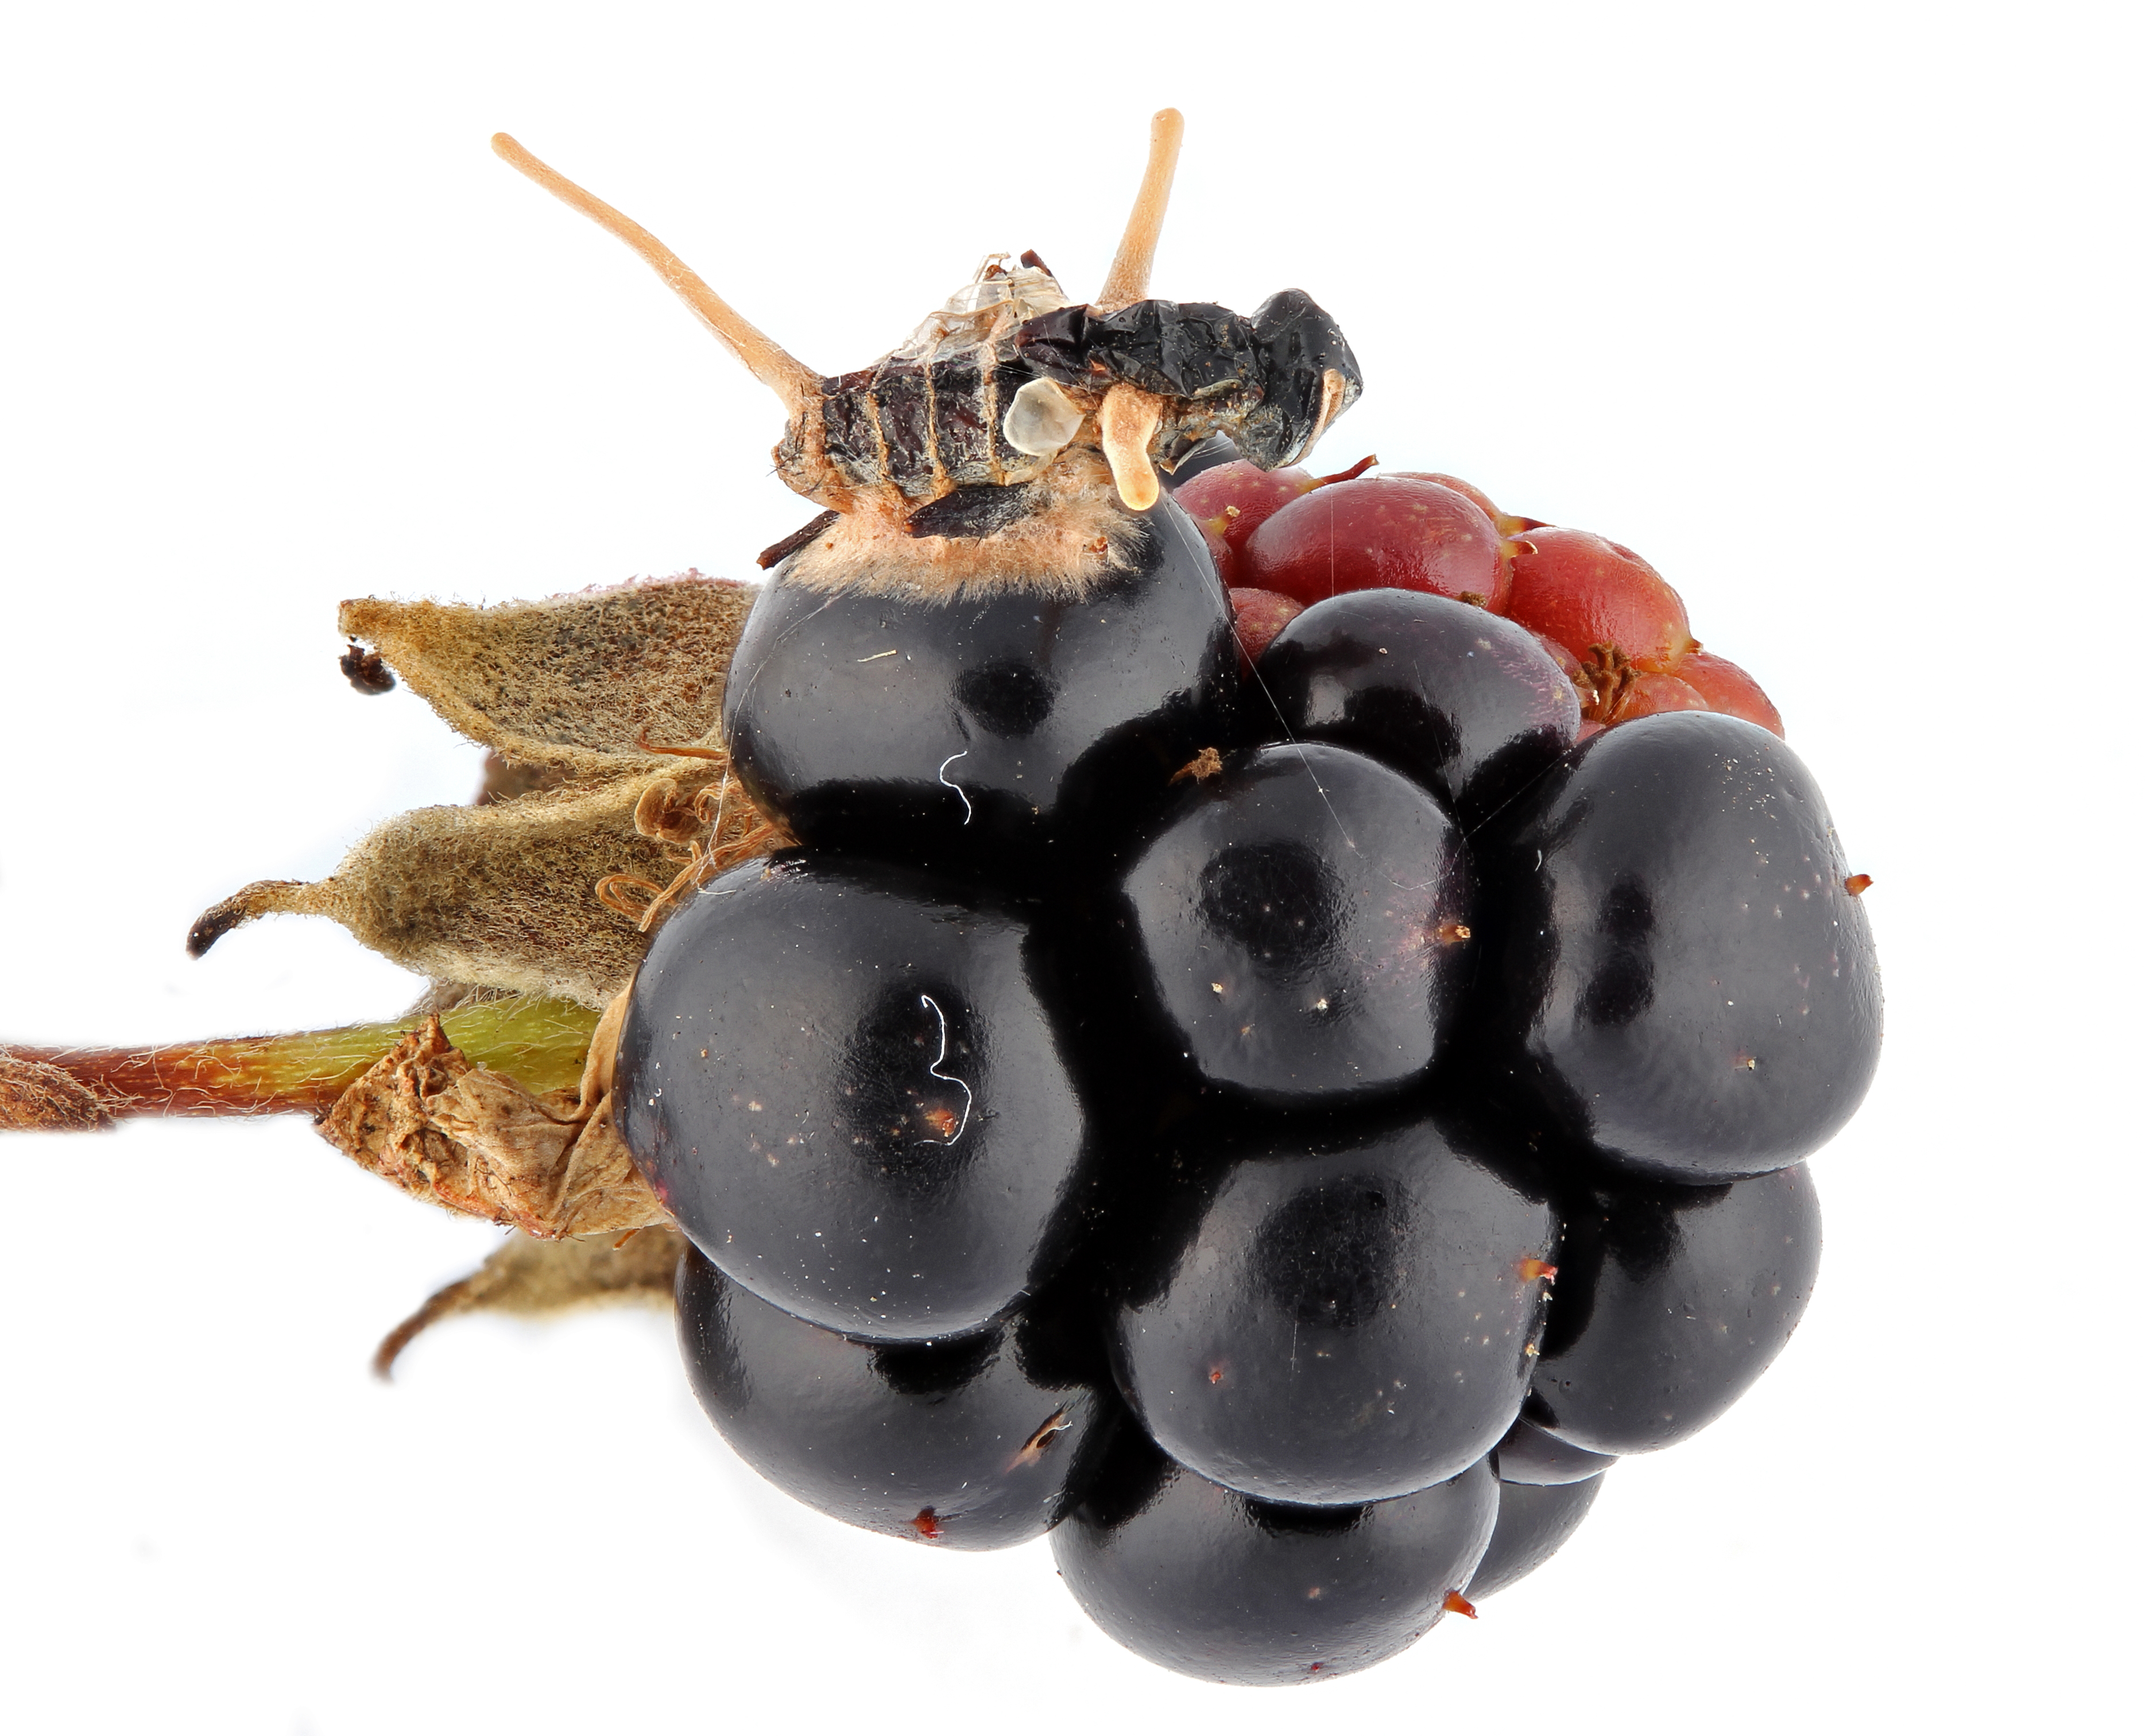 Infected fly collected from Piedmont  Research Station. Three projects from the fly's body are fruiting bodies of the parasitic fungus, Cordyceps, which also has extended hyphae to attach the fly body to the blackberry fruit